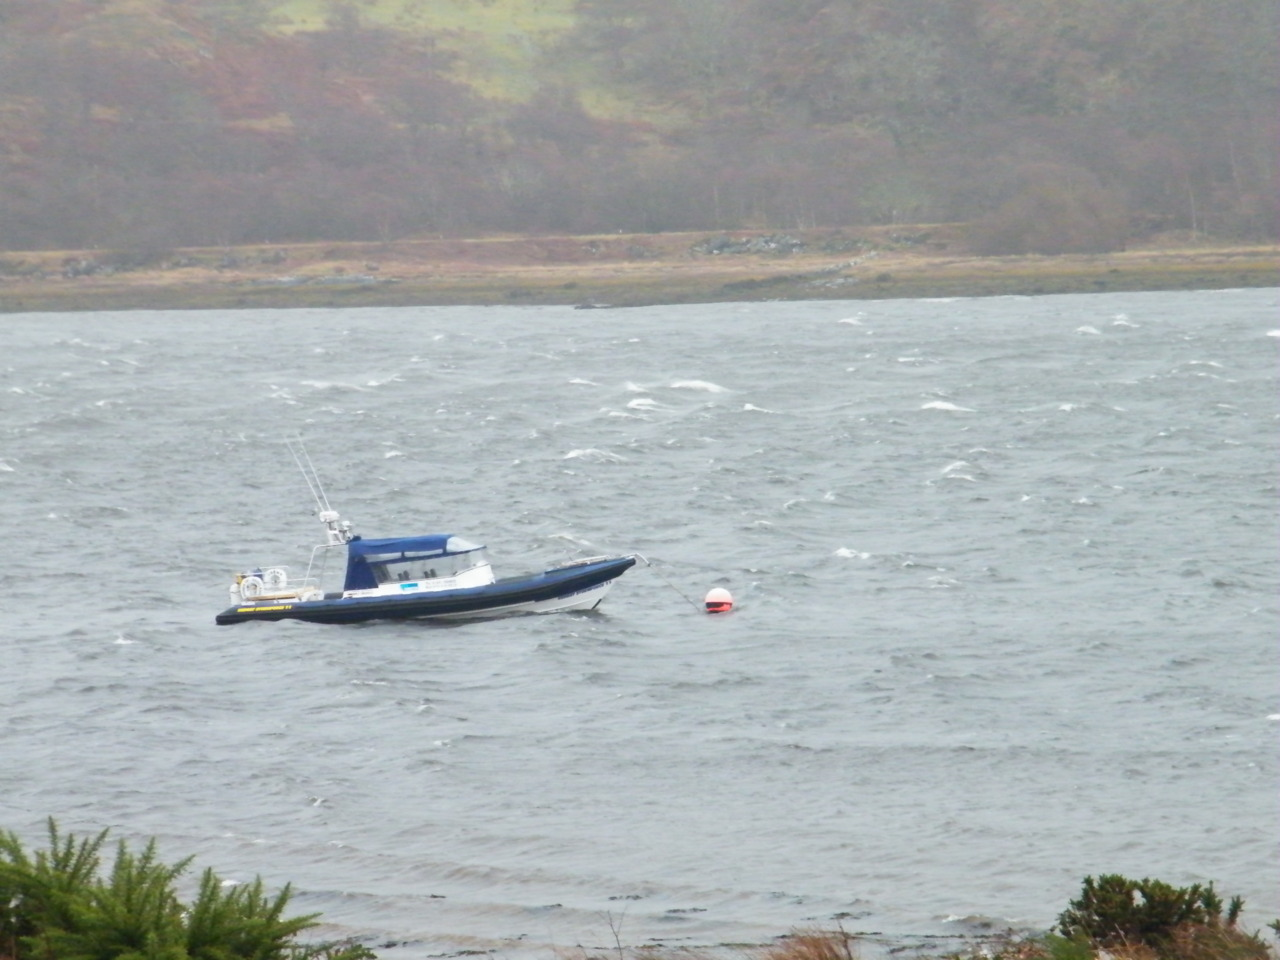 Power of Scotland safely on her mooring in Loch Feochan